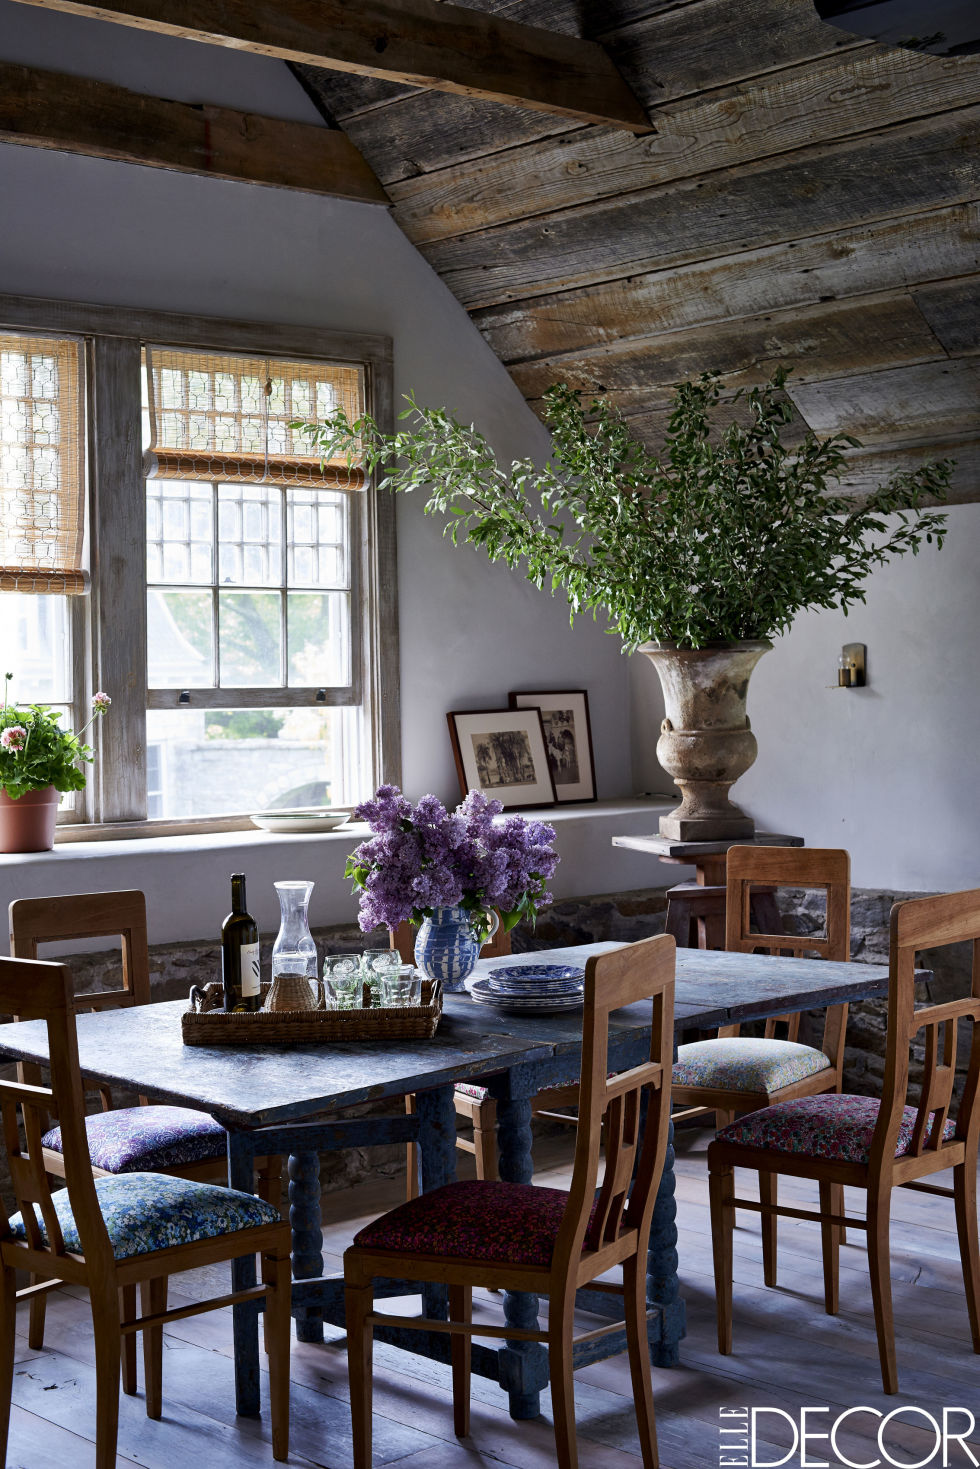 Virginia_Tupker_Mikkel_Vang_Bedfor_New_York_Carriage_House_Louise_Dockery_Paper_and_Moon_dining_table_rustic_blue.jpg